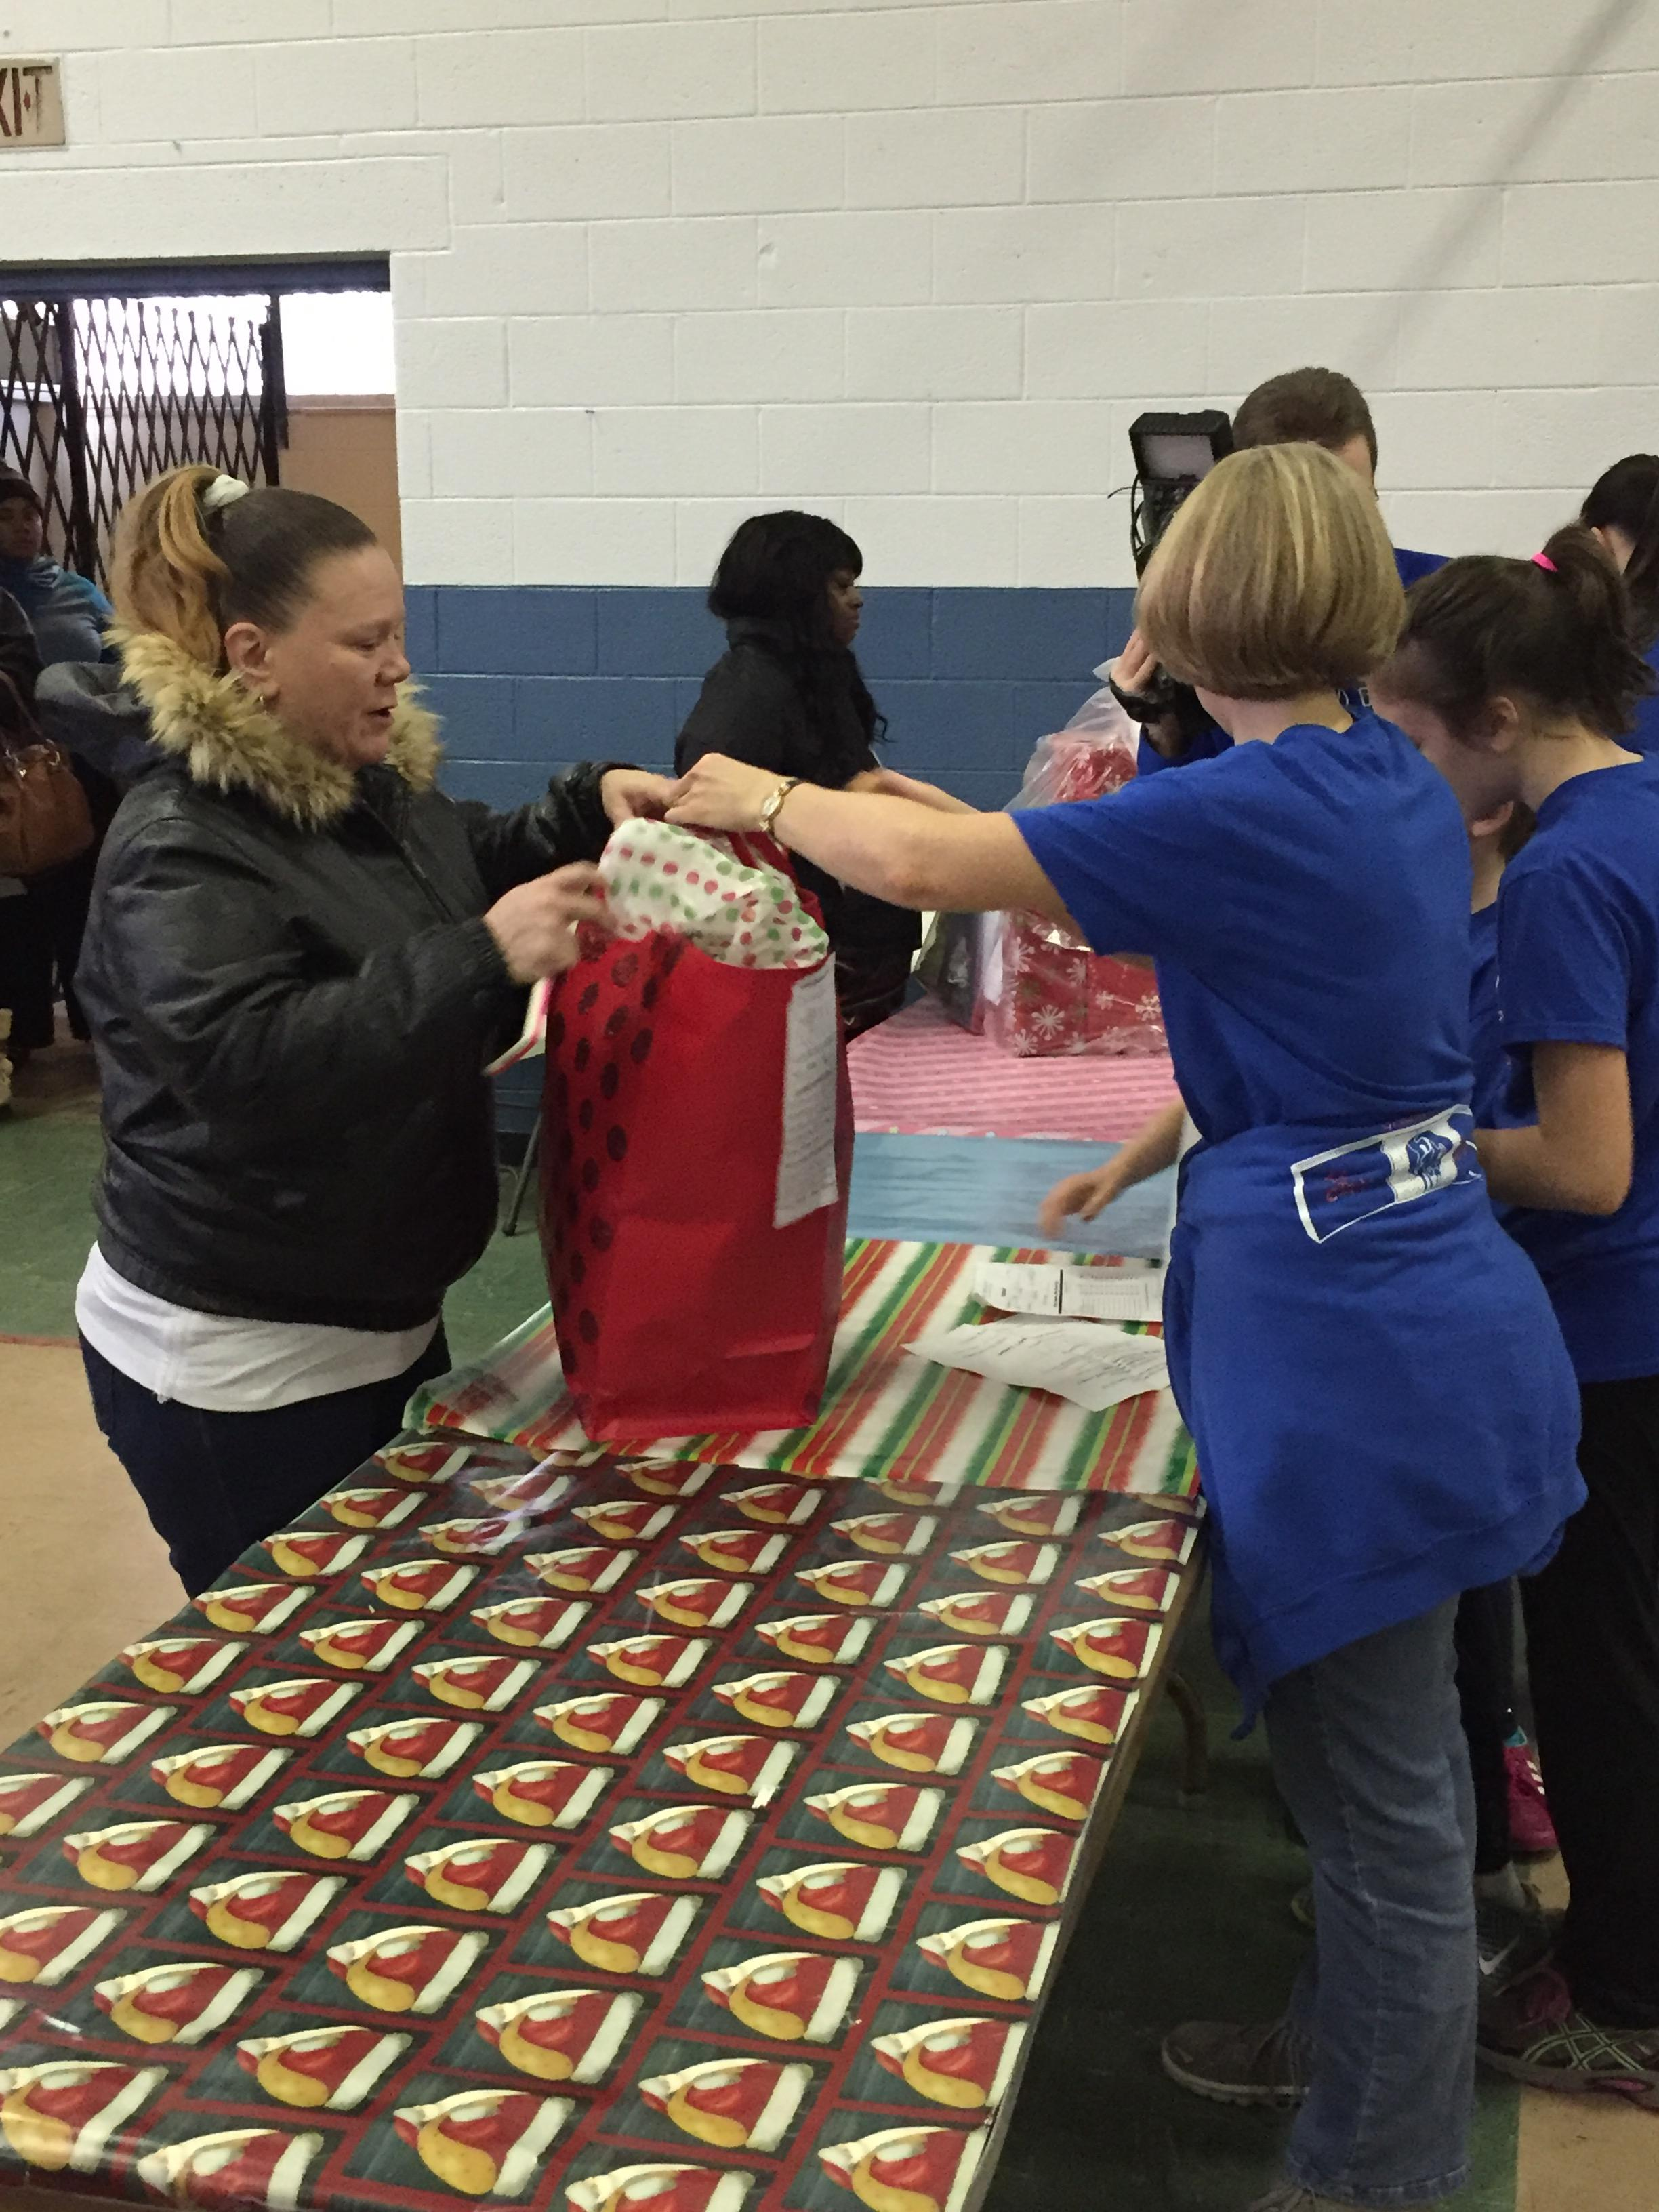 North End Soup Kitchen passed out thousands of pre-wrapped toys for children. (Photo: Kila Peeples)